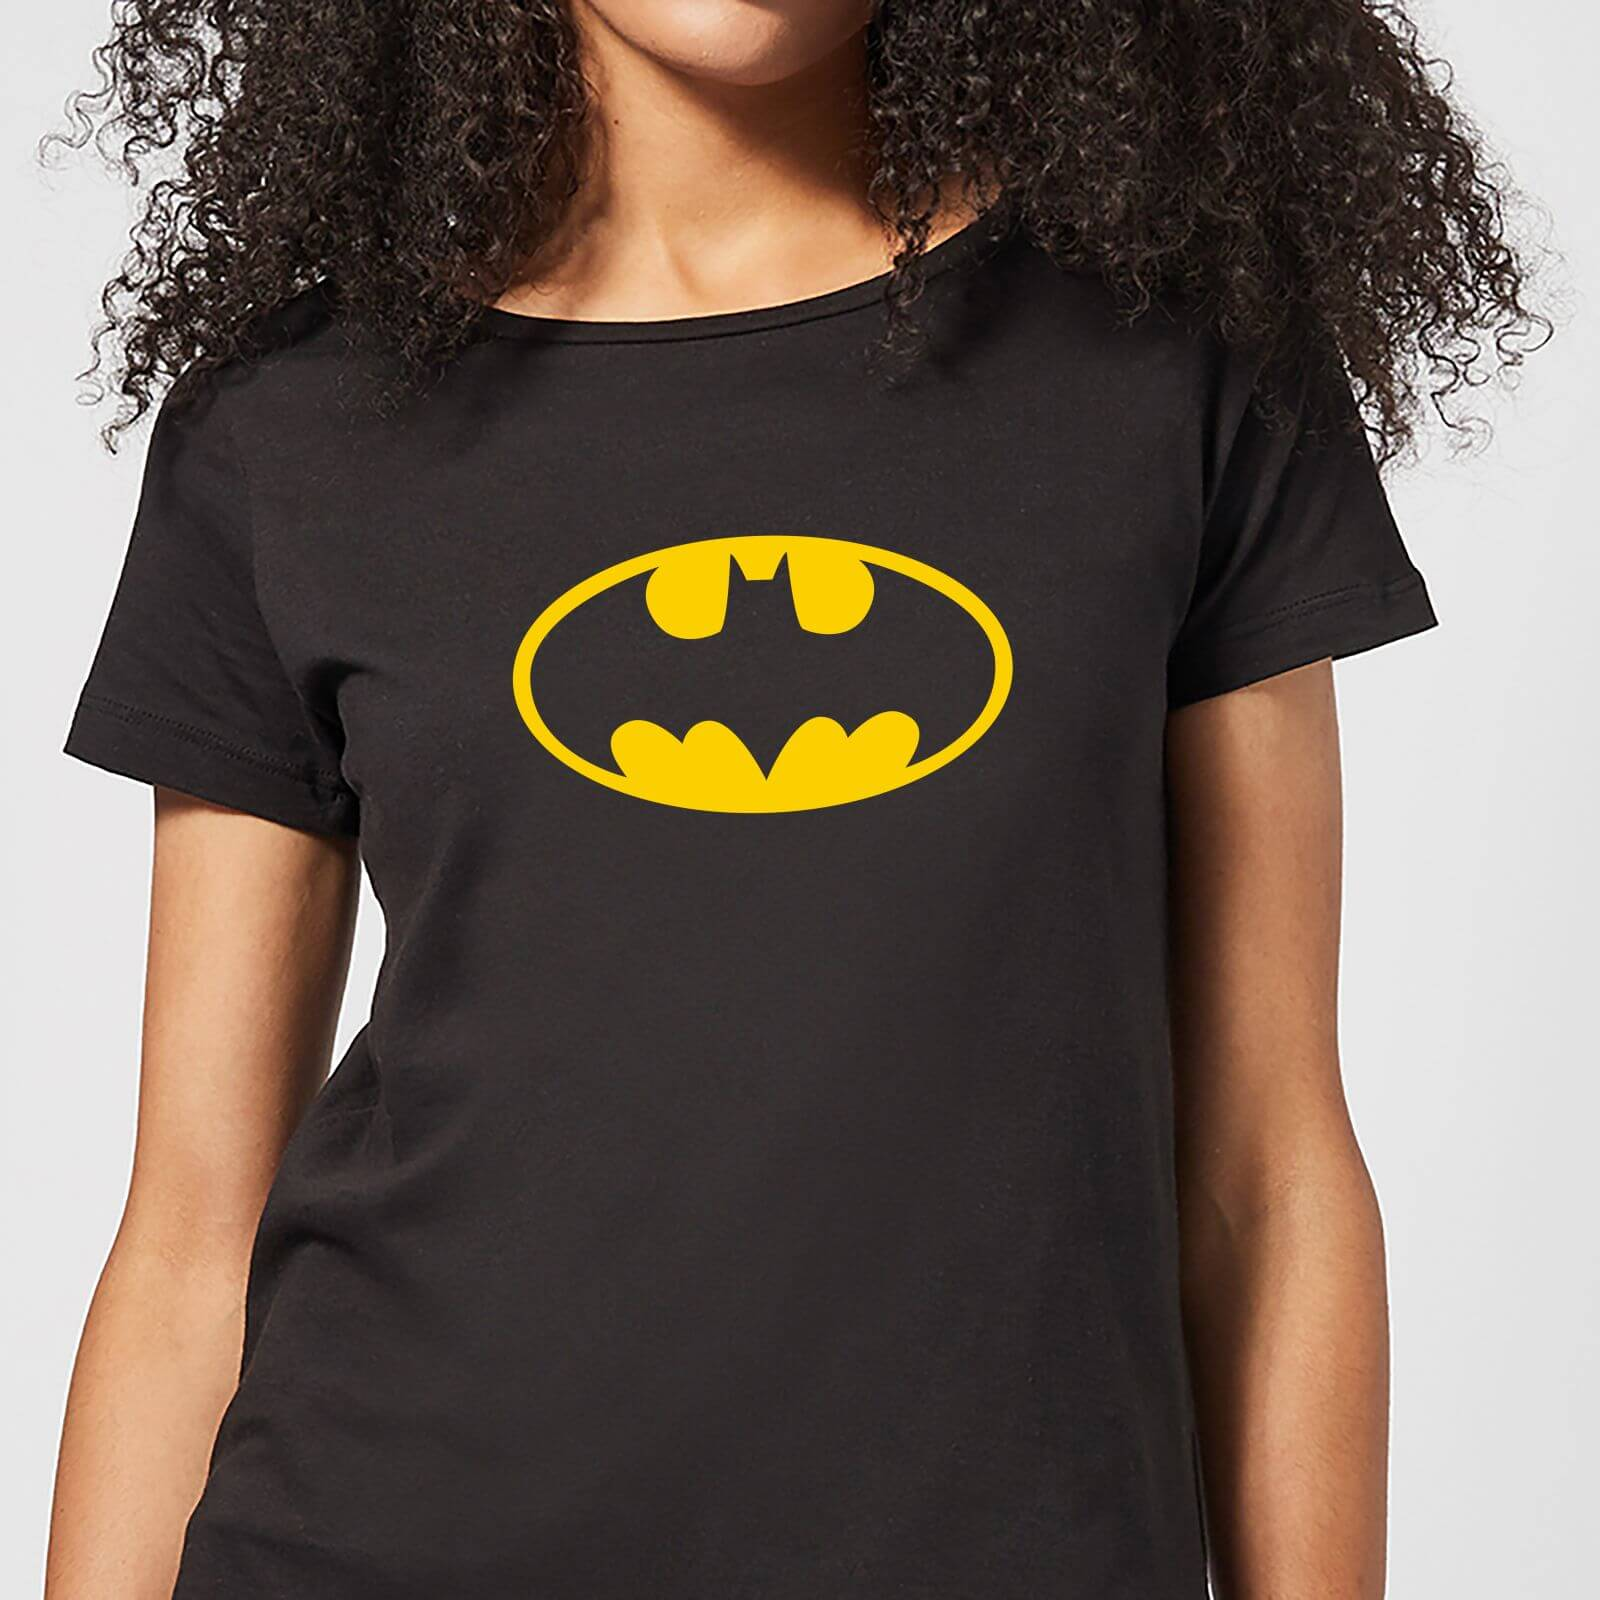 Justice League Batman Logo Women's T-Shirt - Black - M - Negro de DC Comics